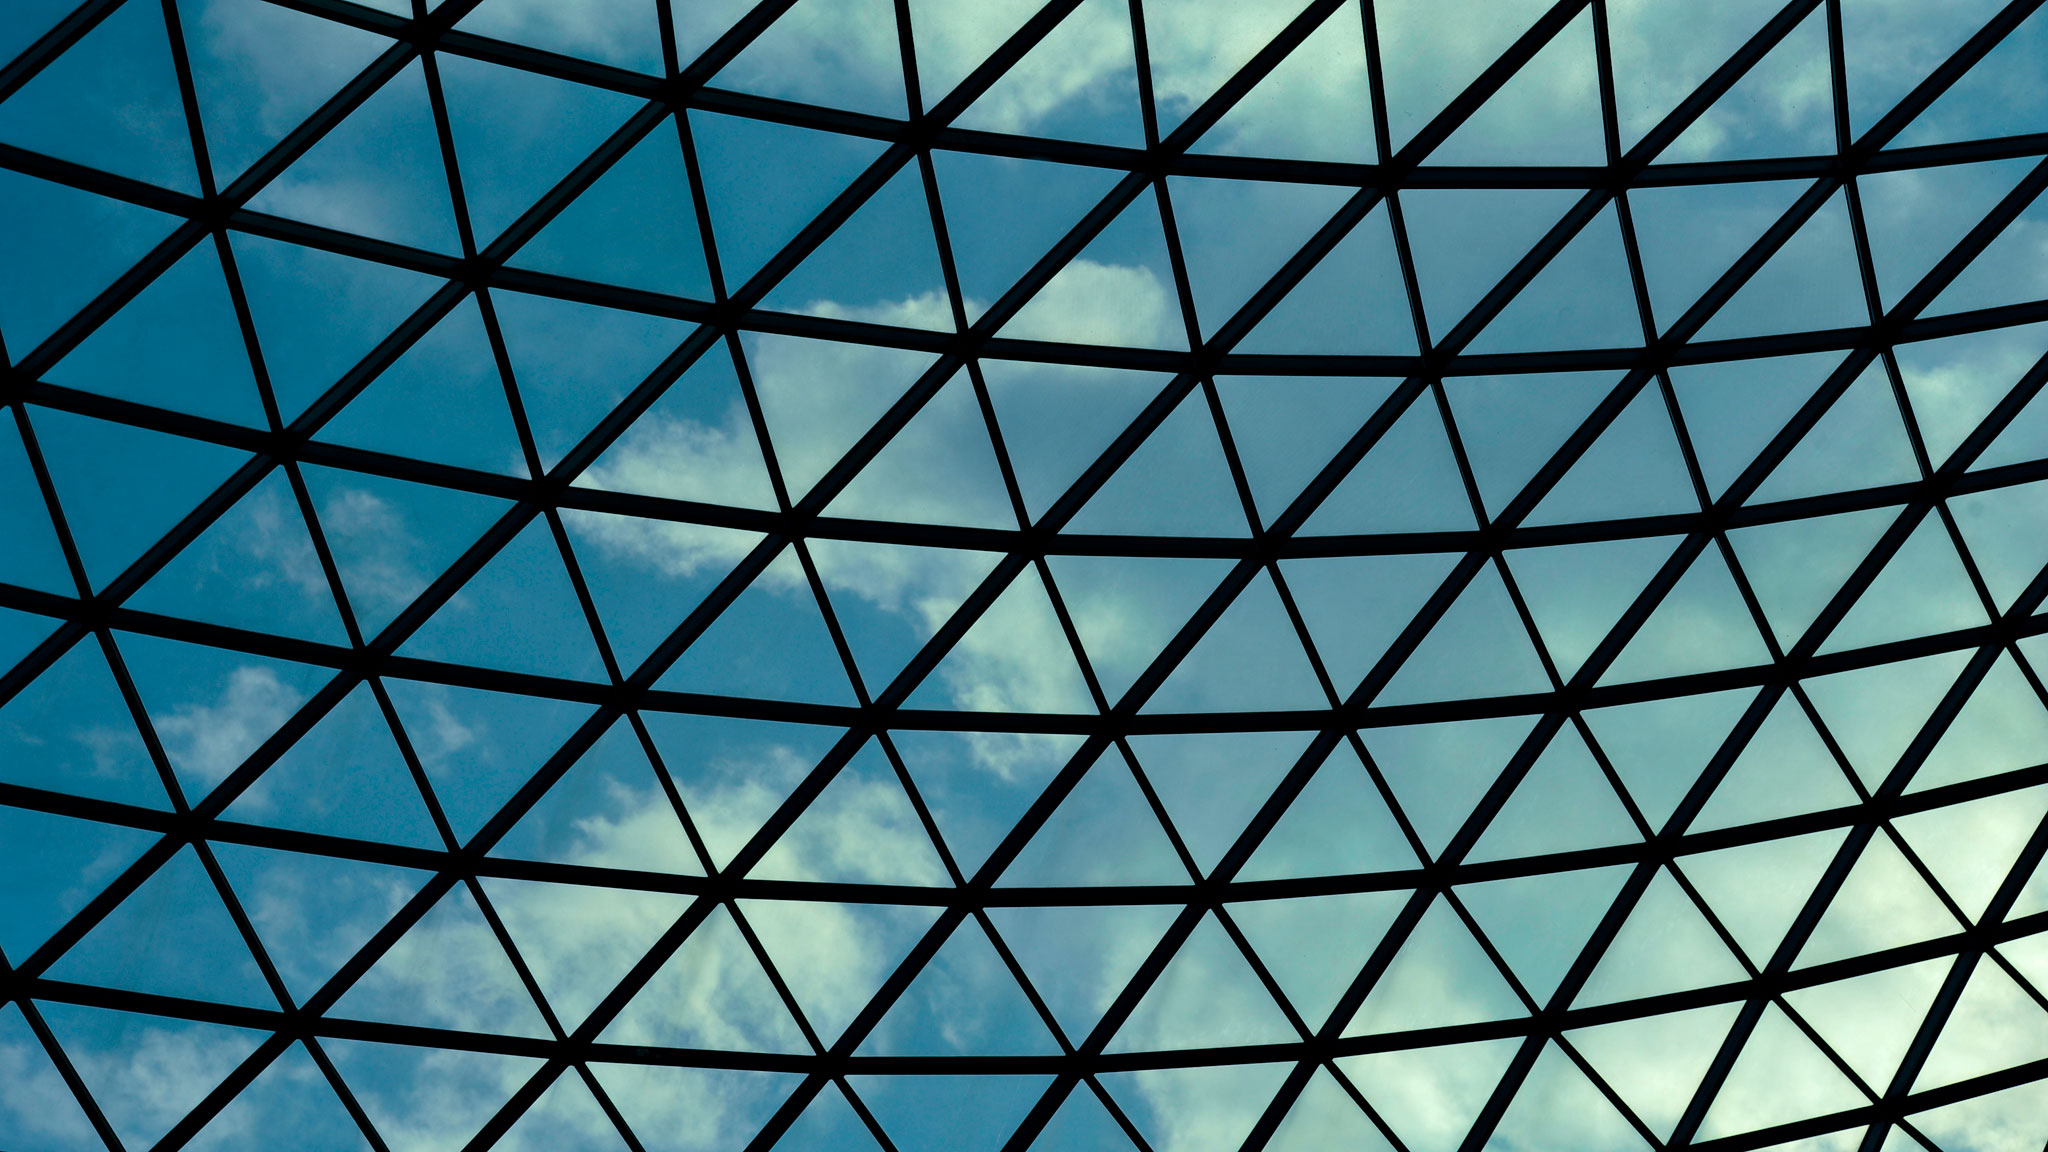 The courtyard at the British Museum showing the geometric glass roof design